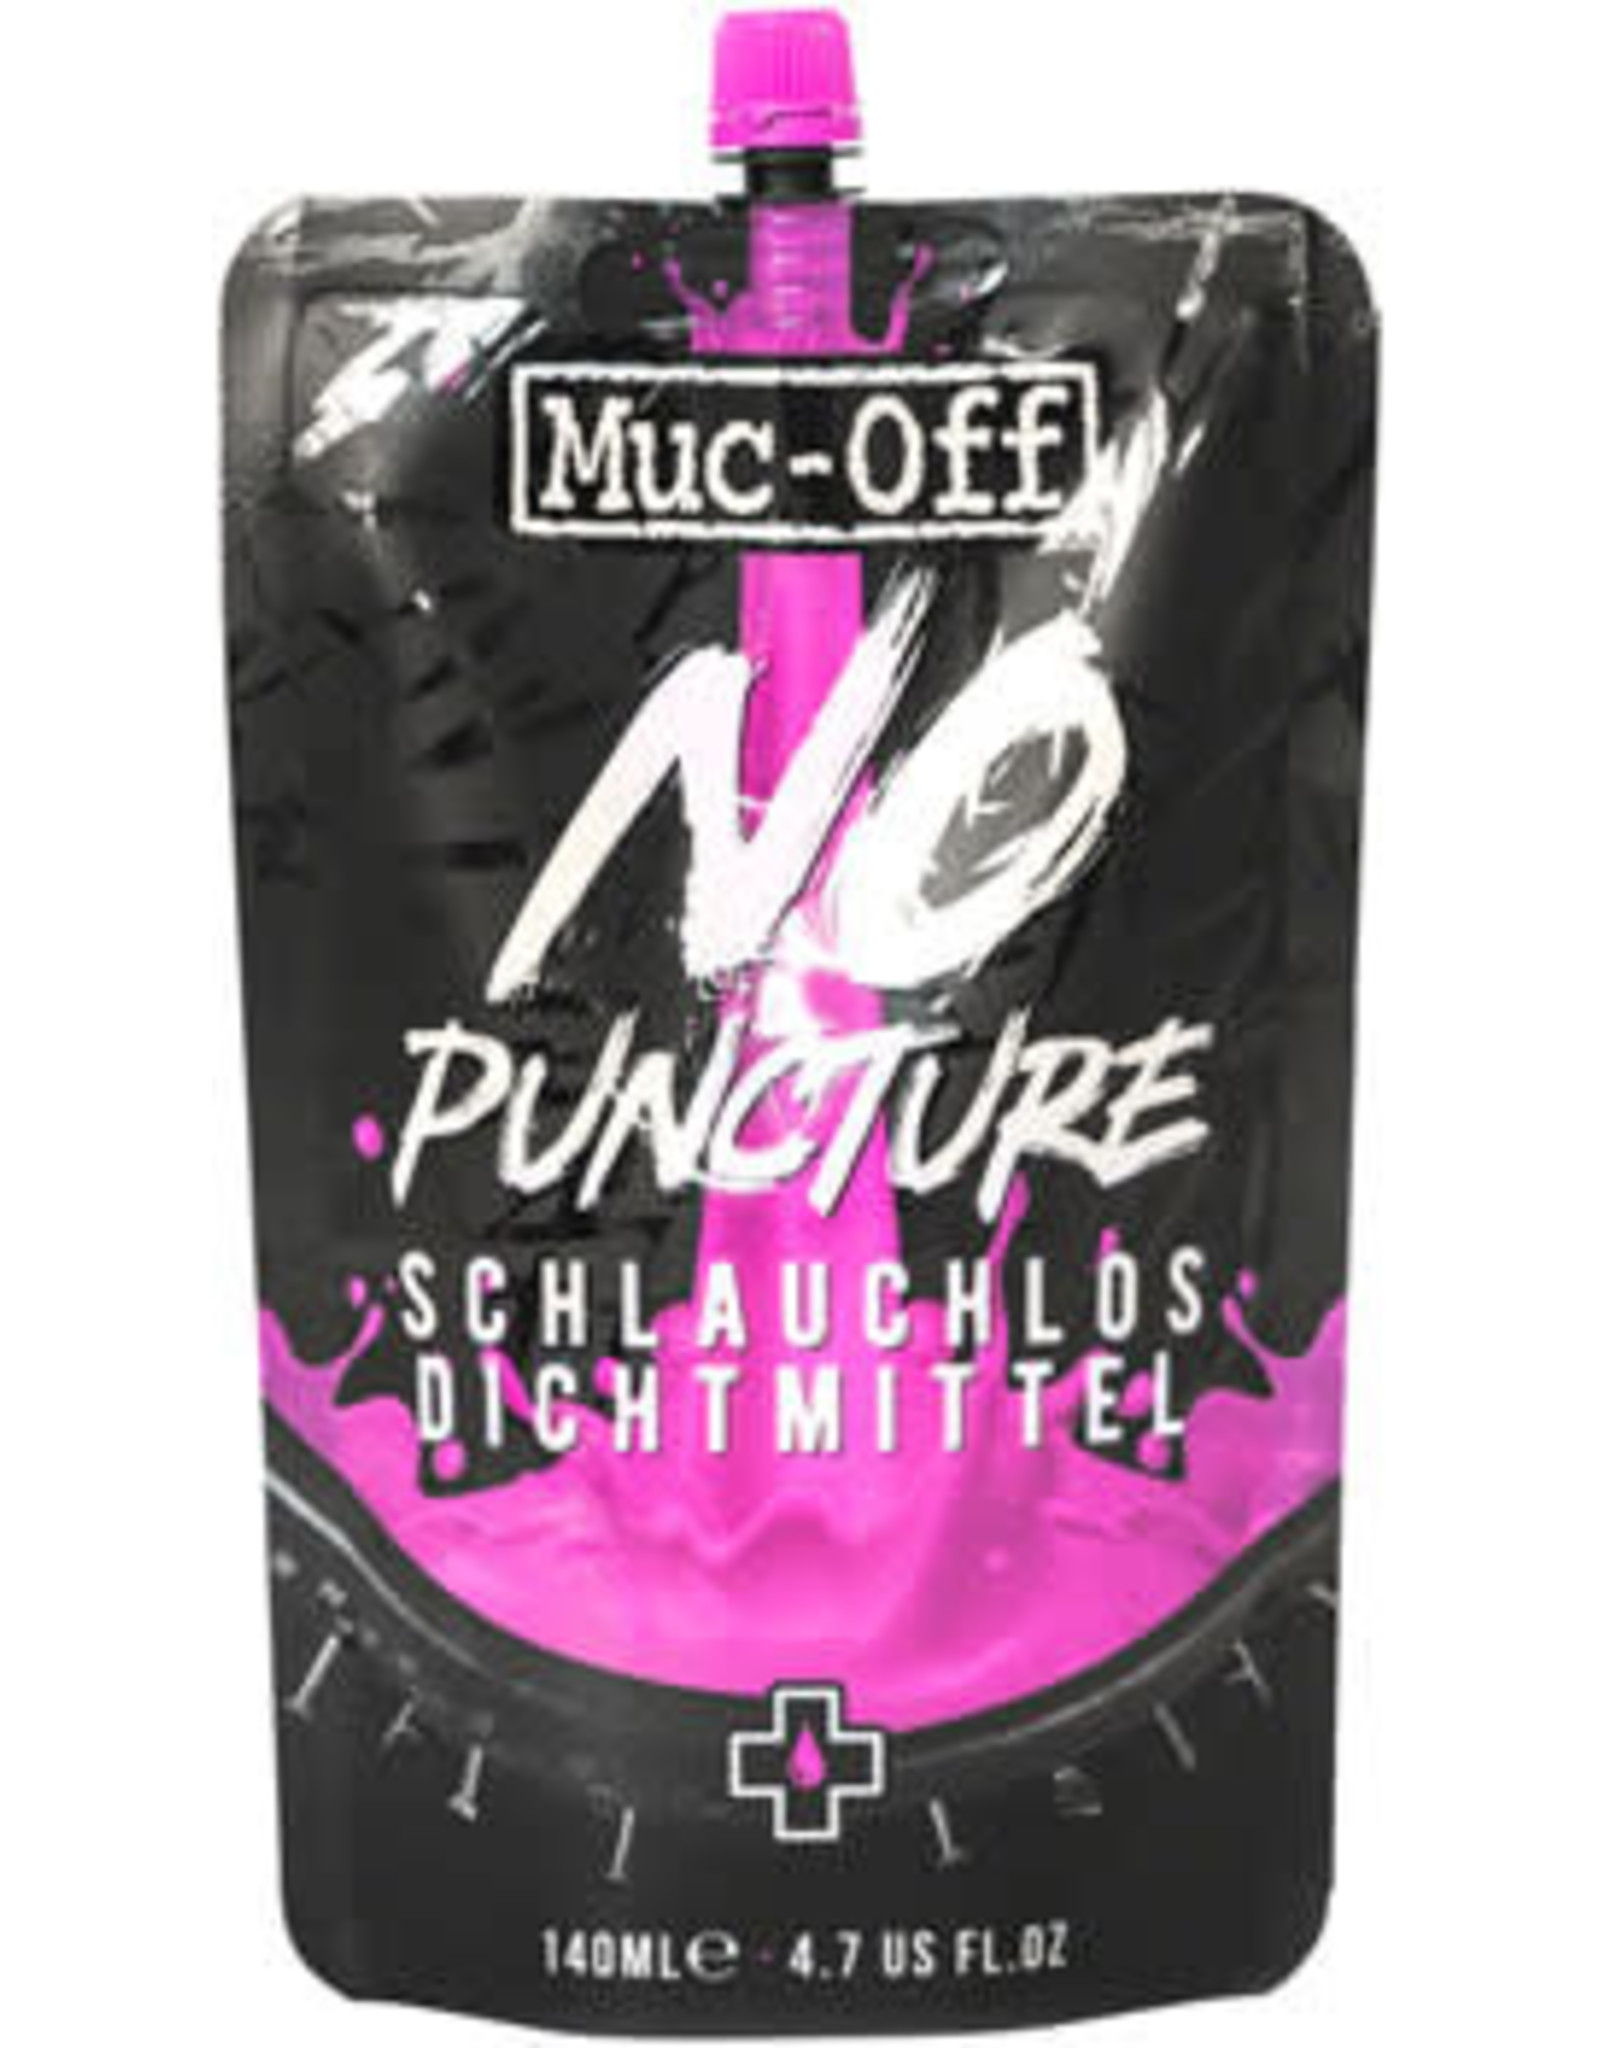 Muc-Off Muc-Off No Puncture Tire Sealant 140ml Pouch